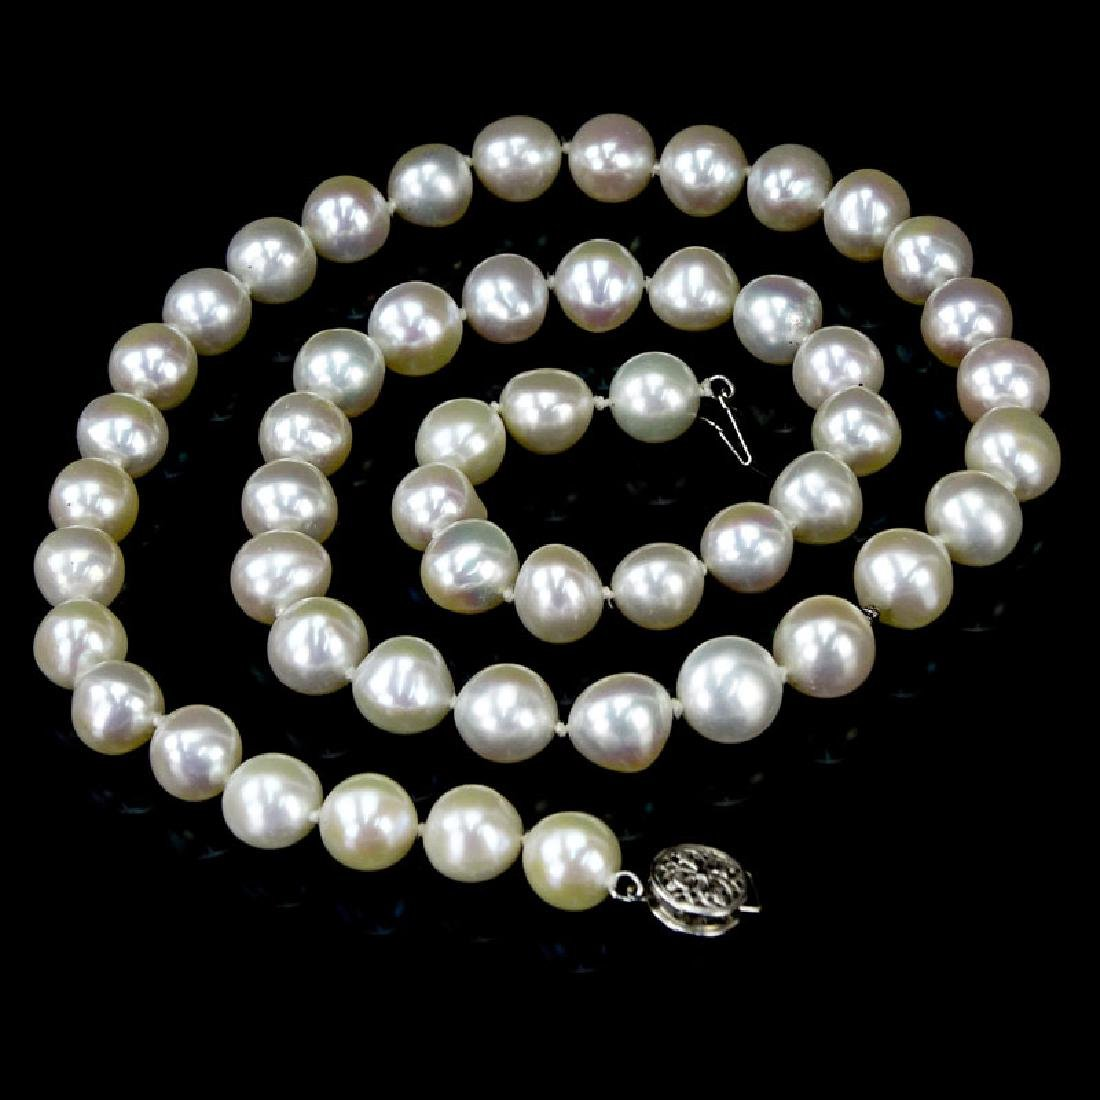 Vintage Fresh Water Pearl Necklace with 14 Karat White